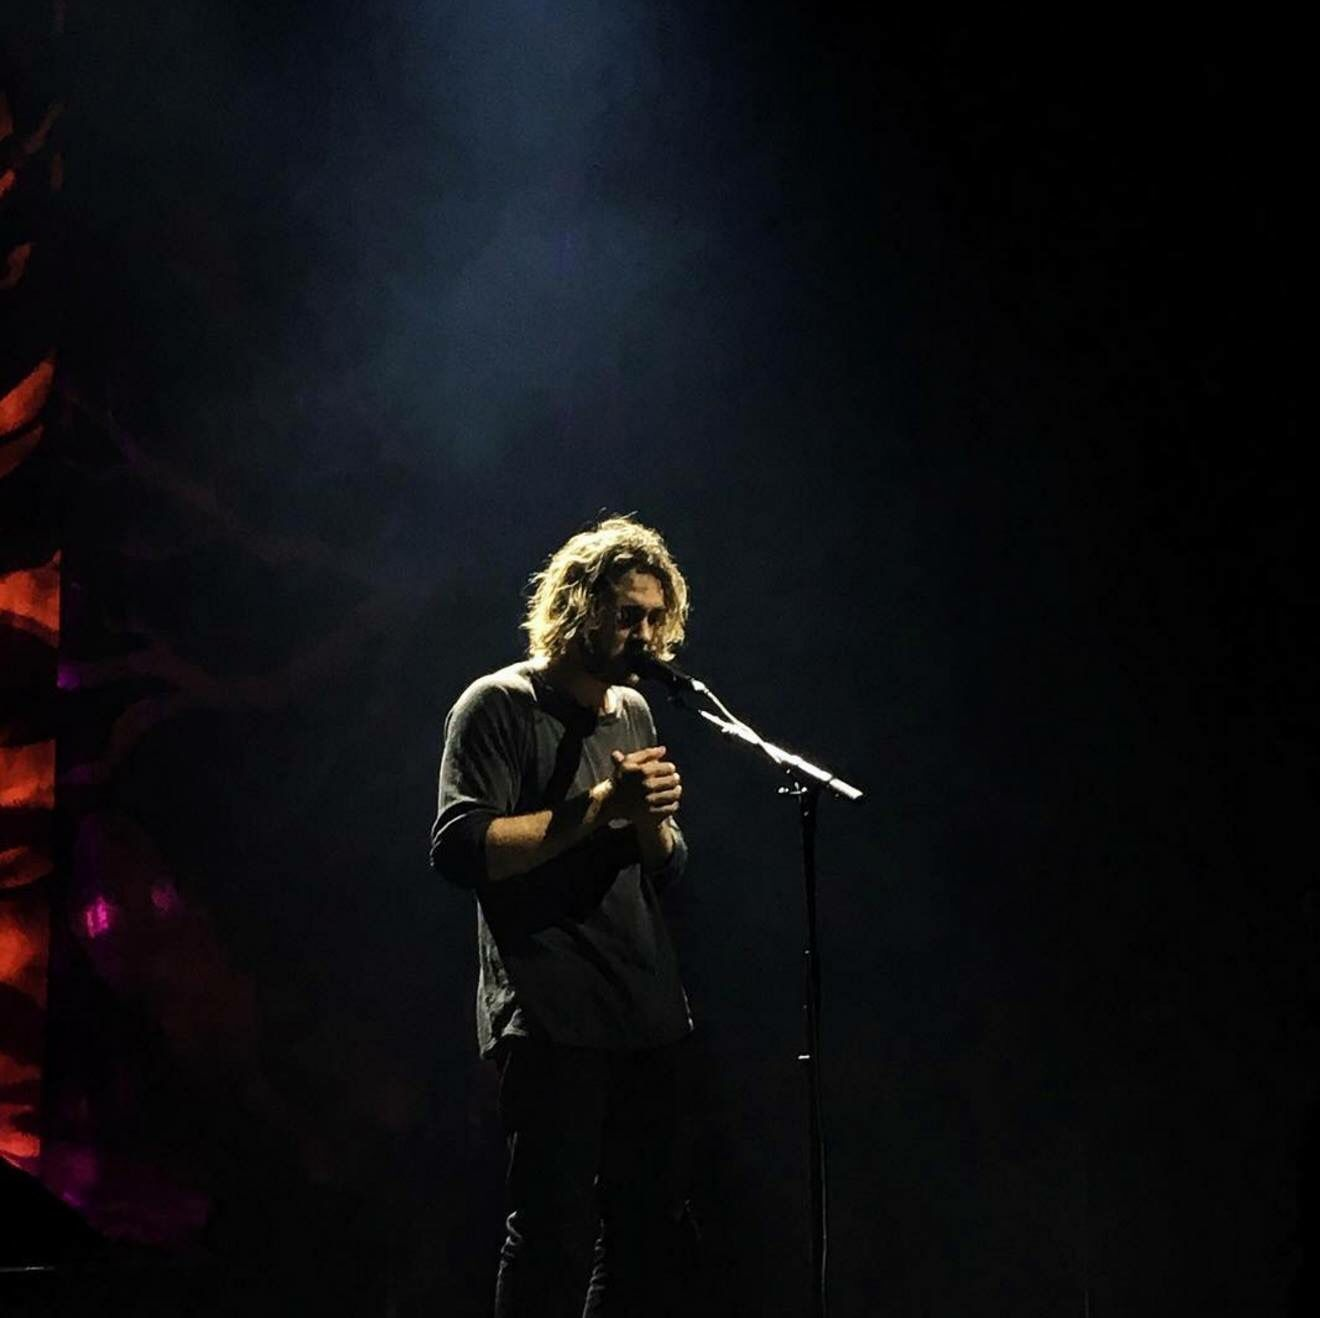 Matt Corby With Images Matt Corby Corby The Incredibles